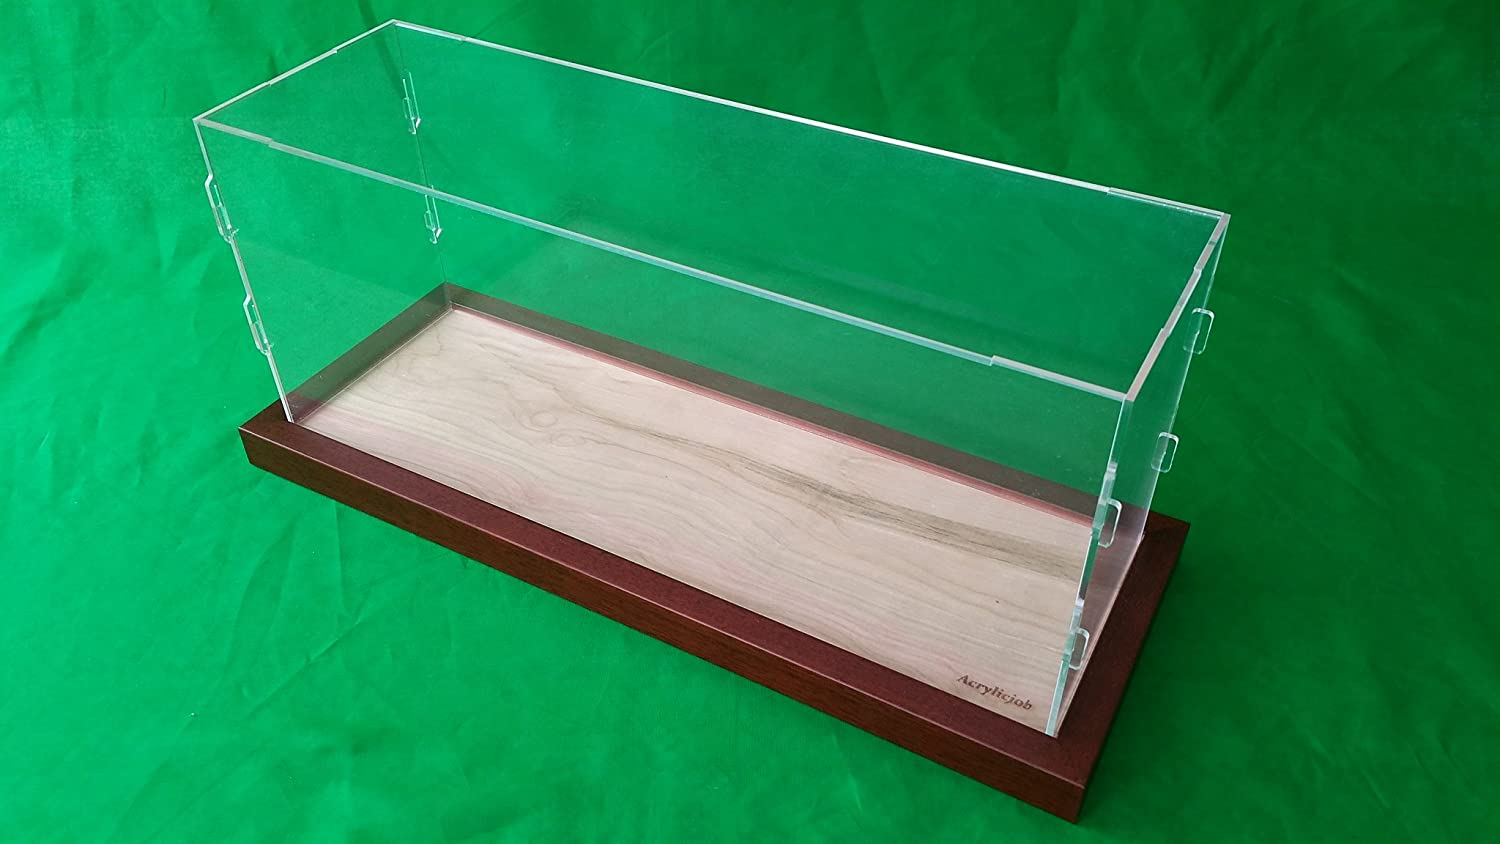 Table top display case - Amazon Com 19 Table Top Display Case Box For Ocean Liner Cruise Ship Clear Plexiglass Acrylic 19 X 6 X 8 Industrial Scientific